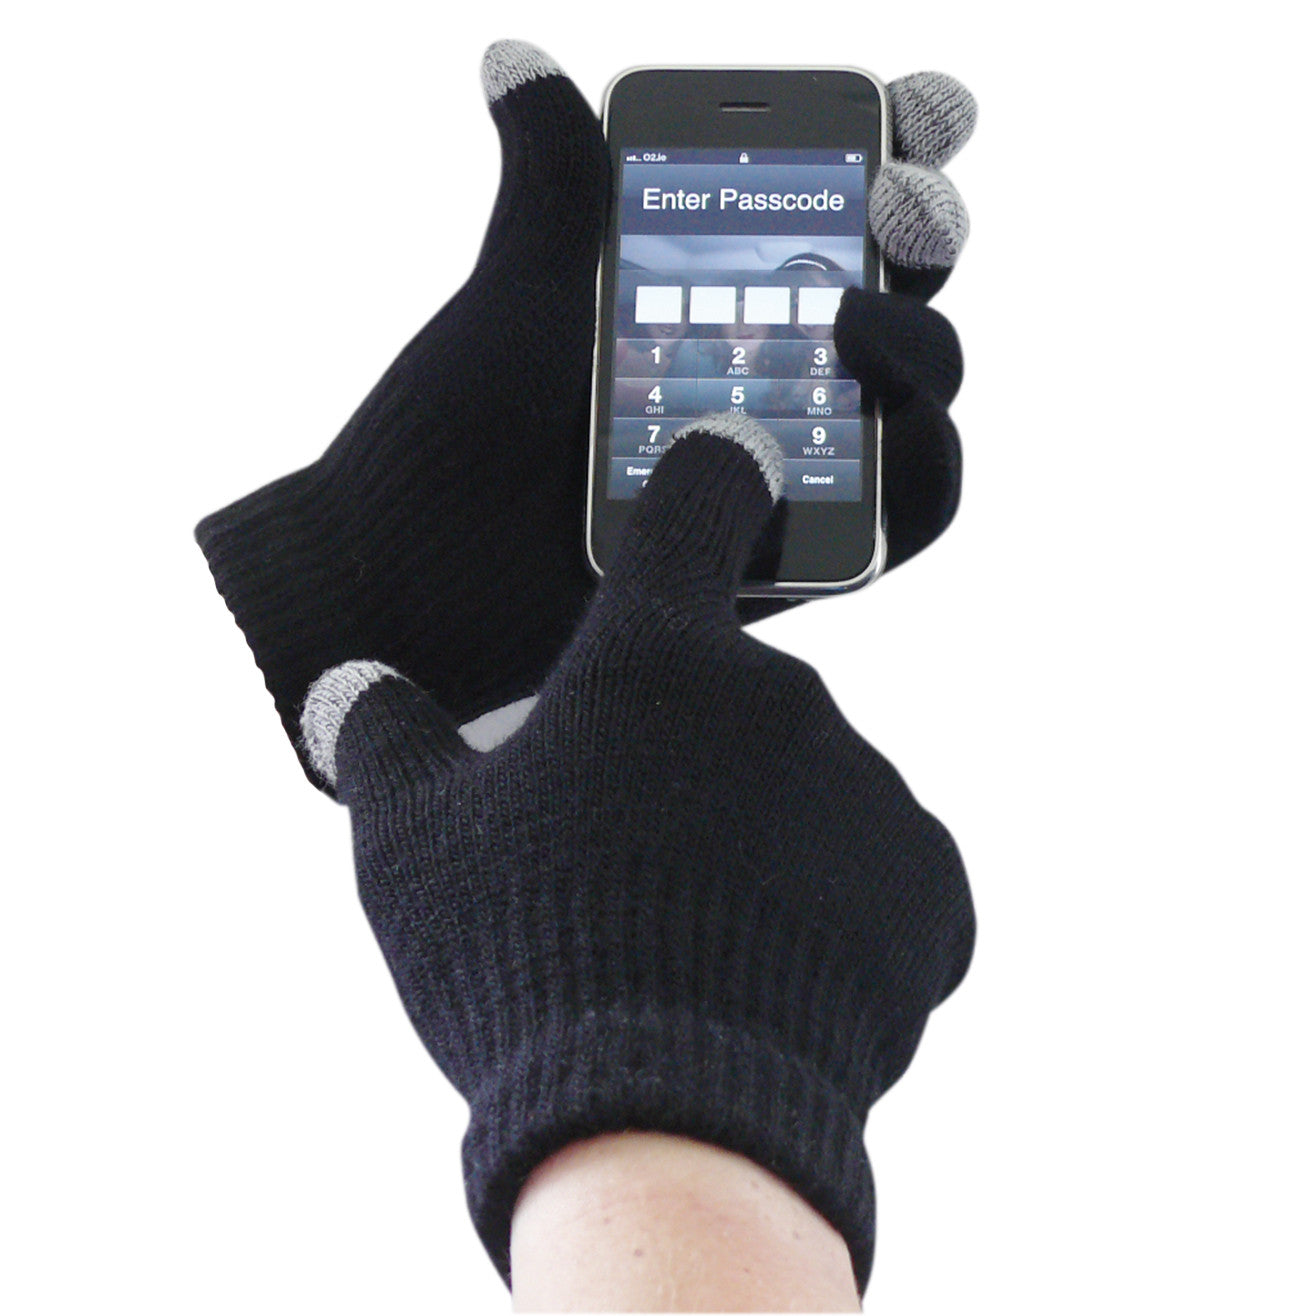 Touchscreen Knit Glove - peterdrew.com